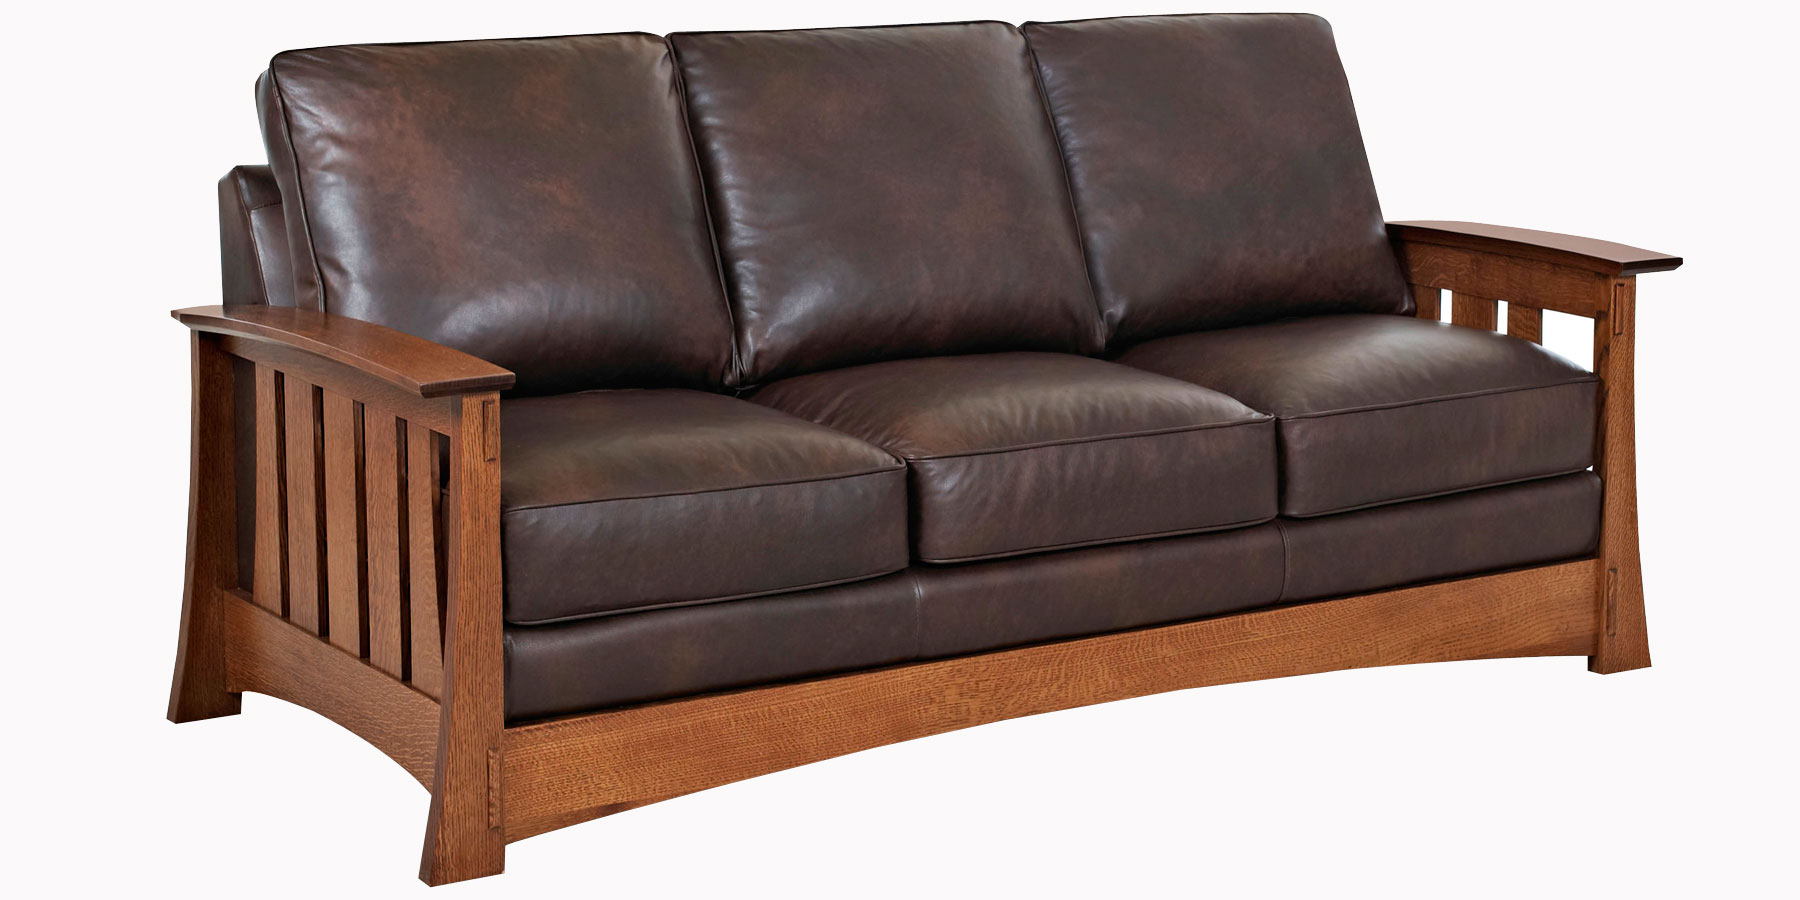 Mission Style Leather Pillow Back Living Room Seating